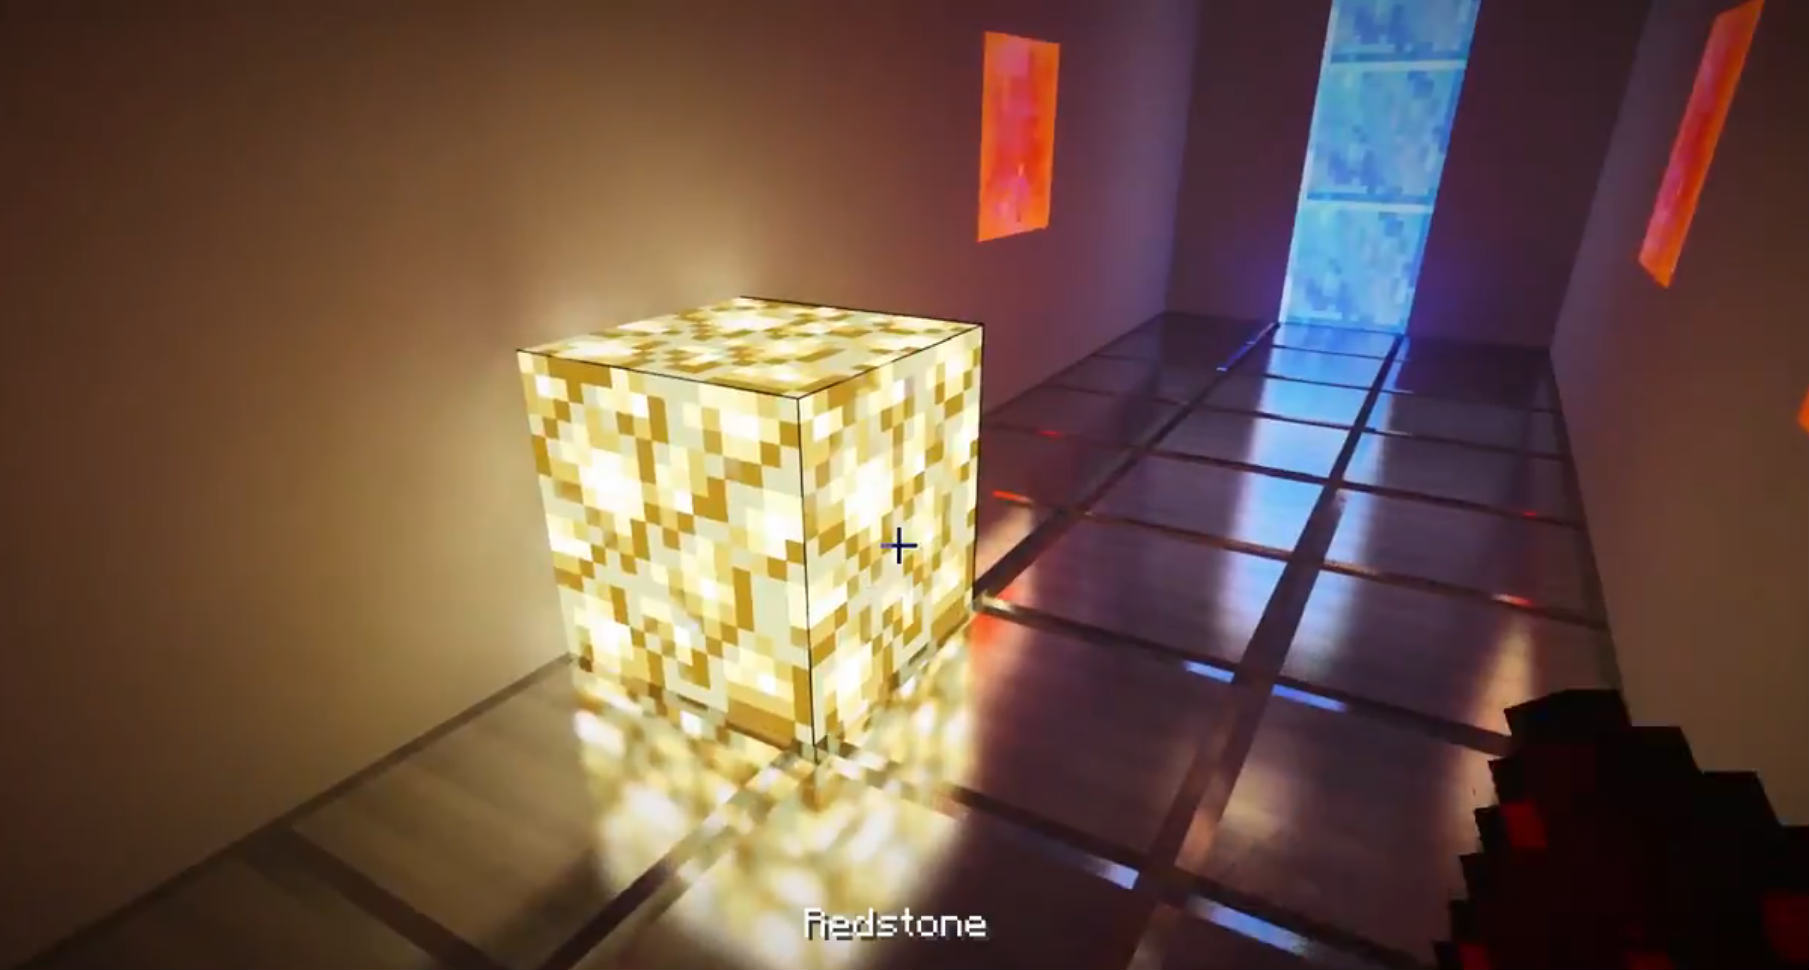 Minecraft with path tracing almost looks like Minecraft 2